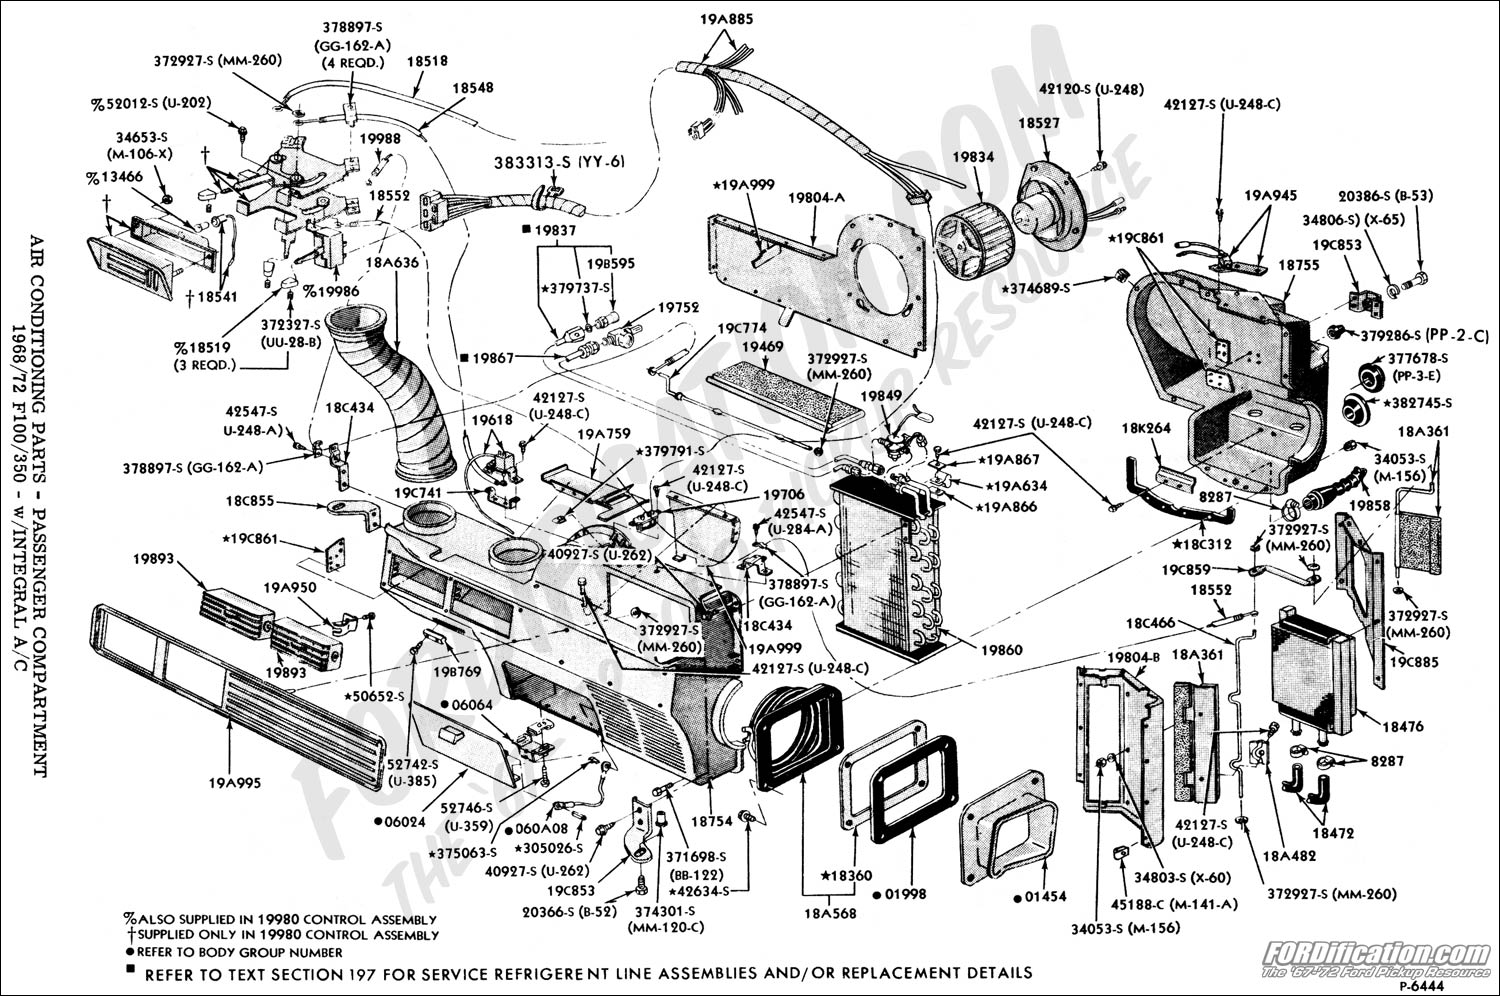 Ford Escape Exhaust Diagram on 1960 Ford F100 Wiring Diagram